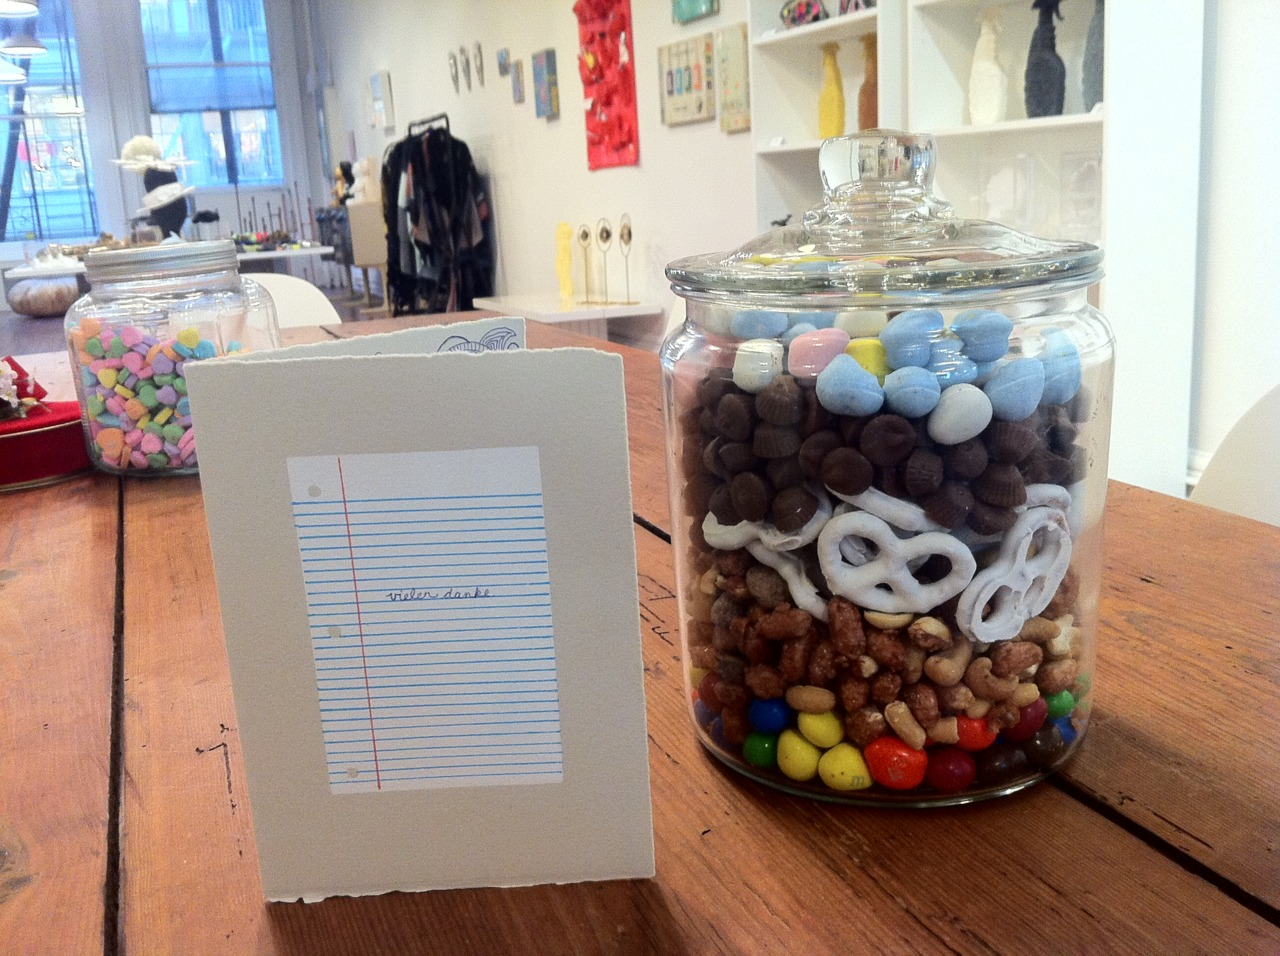 OUR SHOWROOM JUST GOT THIS NEW YUMMY SNACK JAR COURTESY OF THE GRACEFUL BALLERINA, PATRICIA ZHOU DANKE DANKE DANKE.